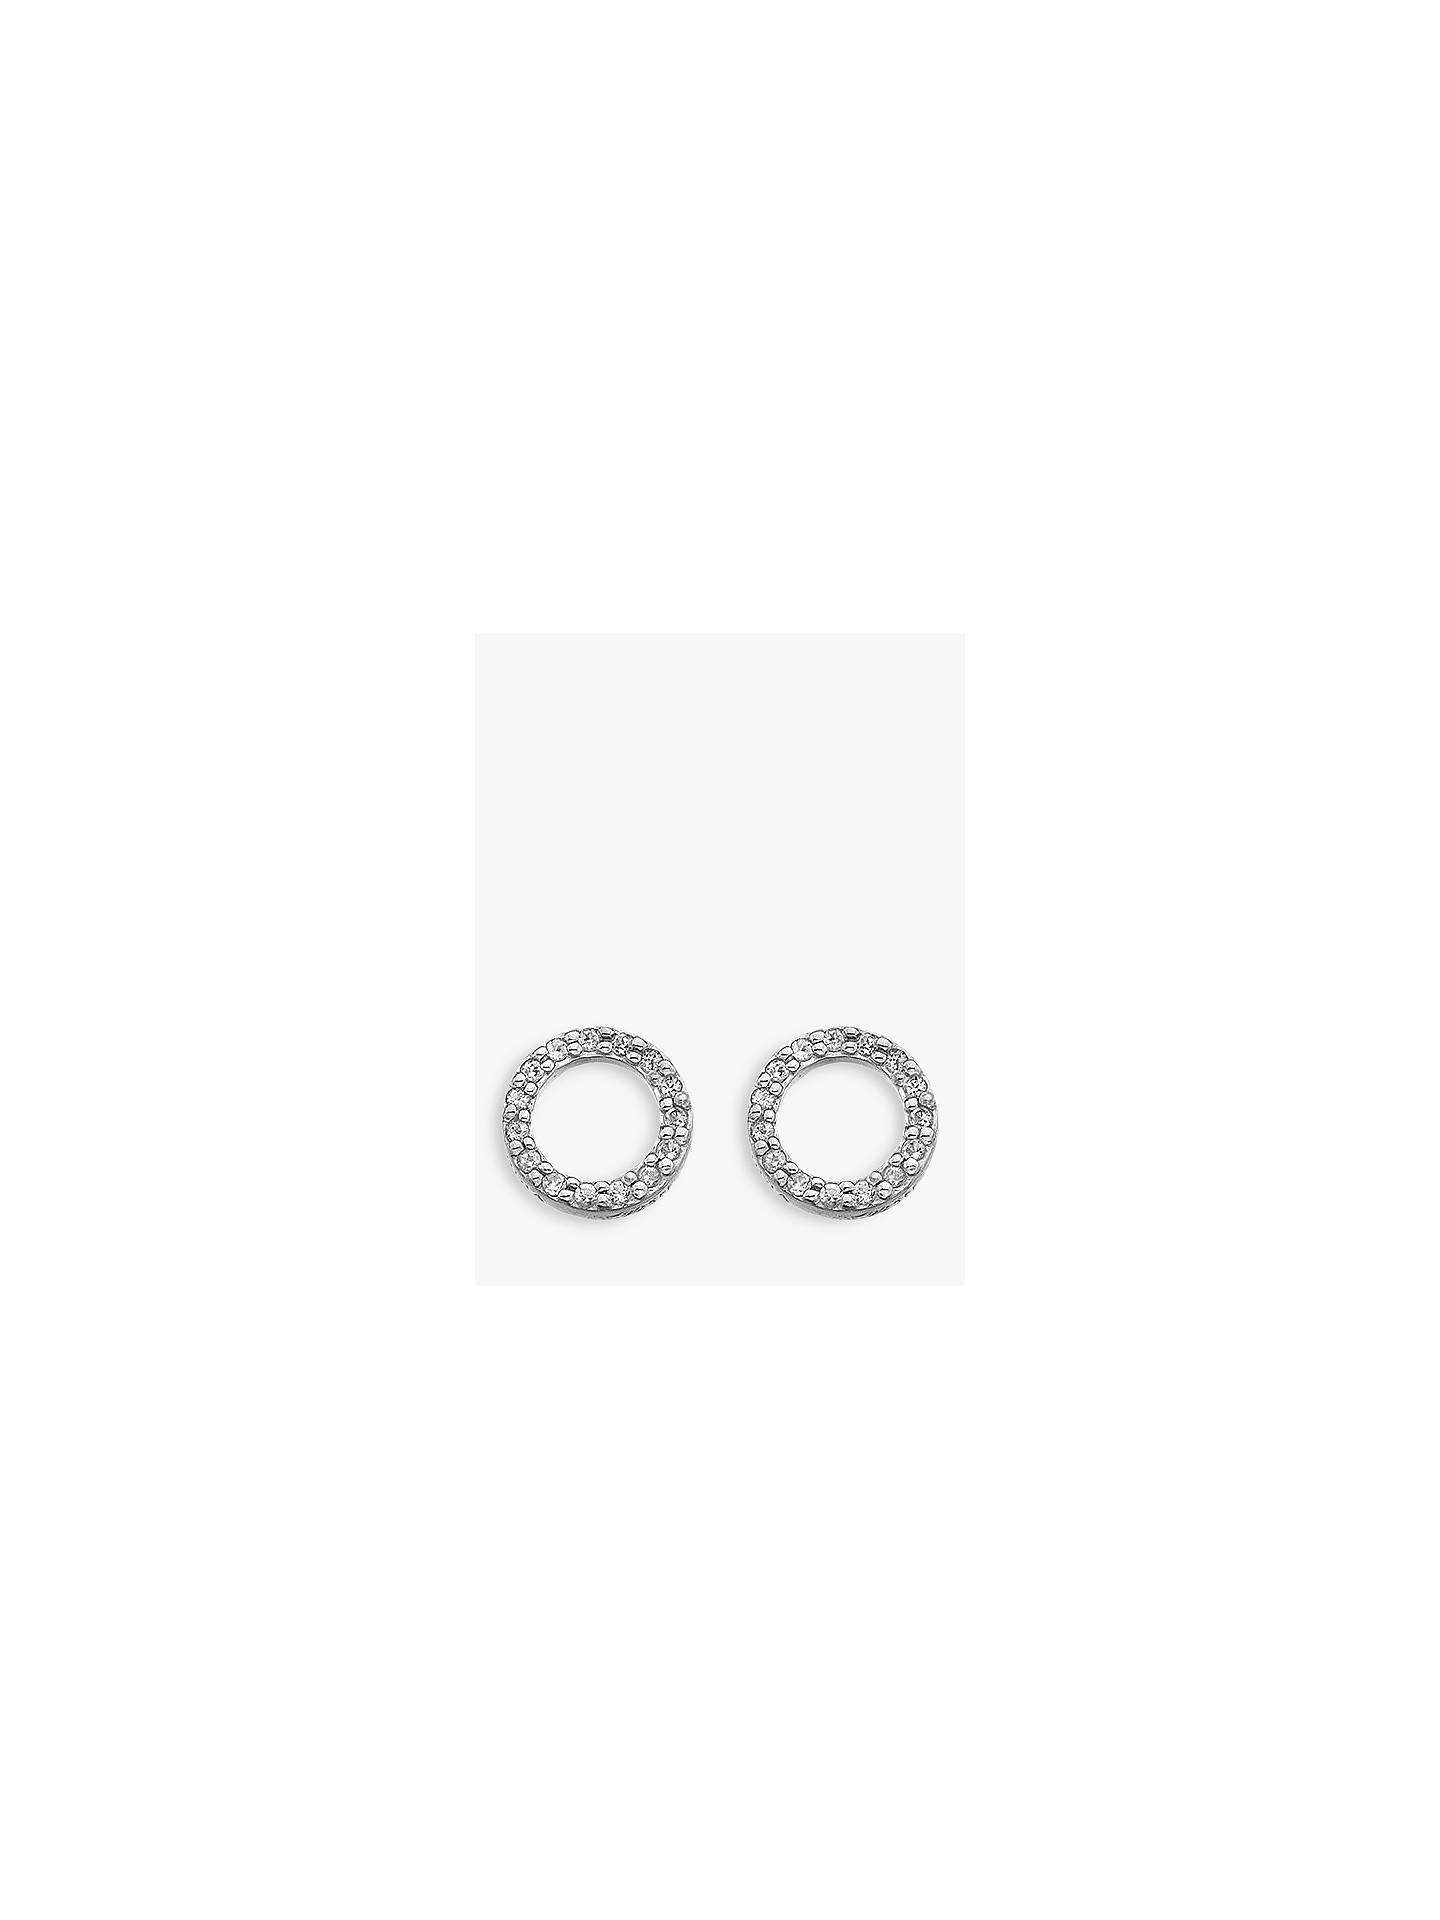 BuyHot Diamonds Bliss 0.005ct Diamond And Topaz Circle Stud Earrings, Silver/Clear Online at johnlewis.com